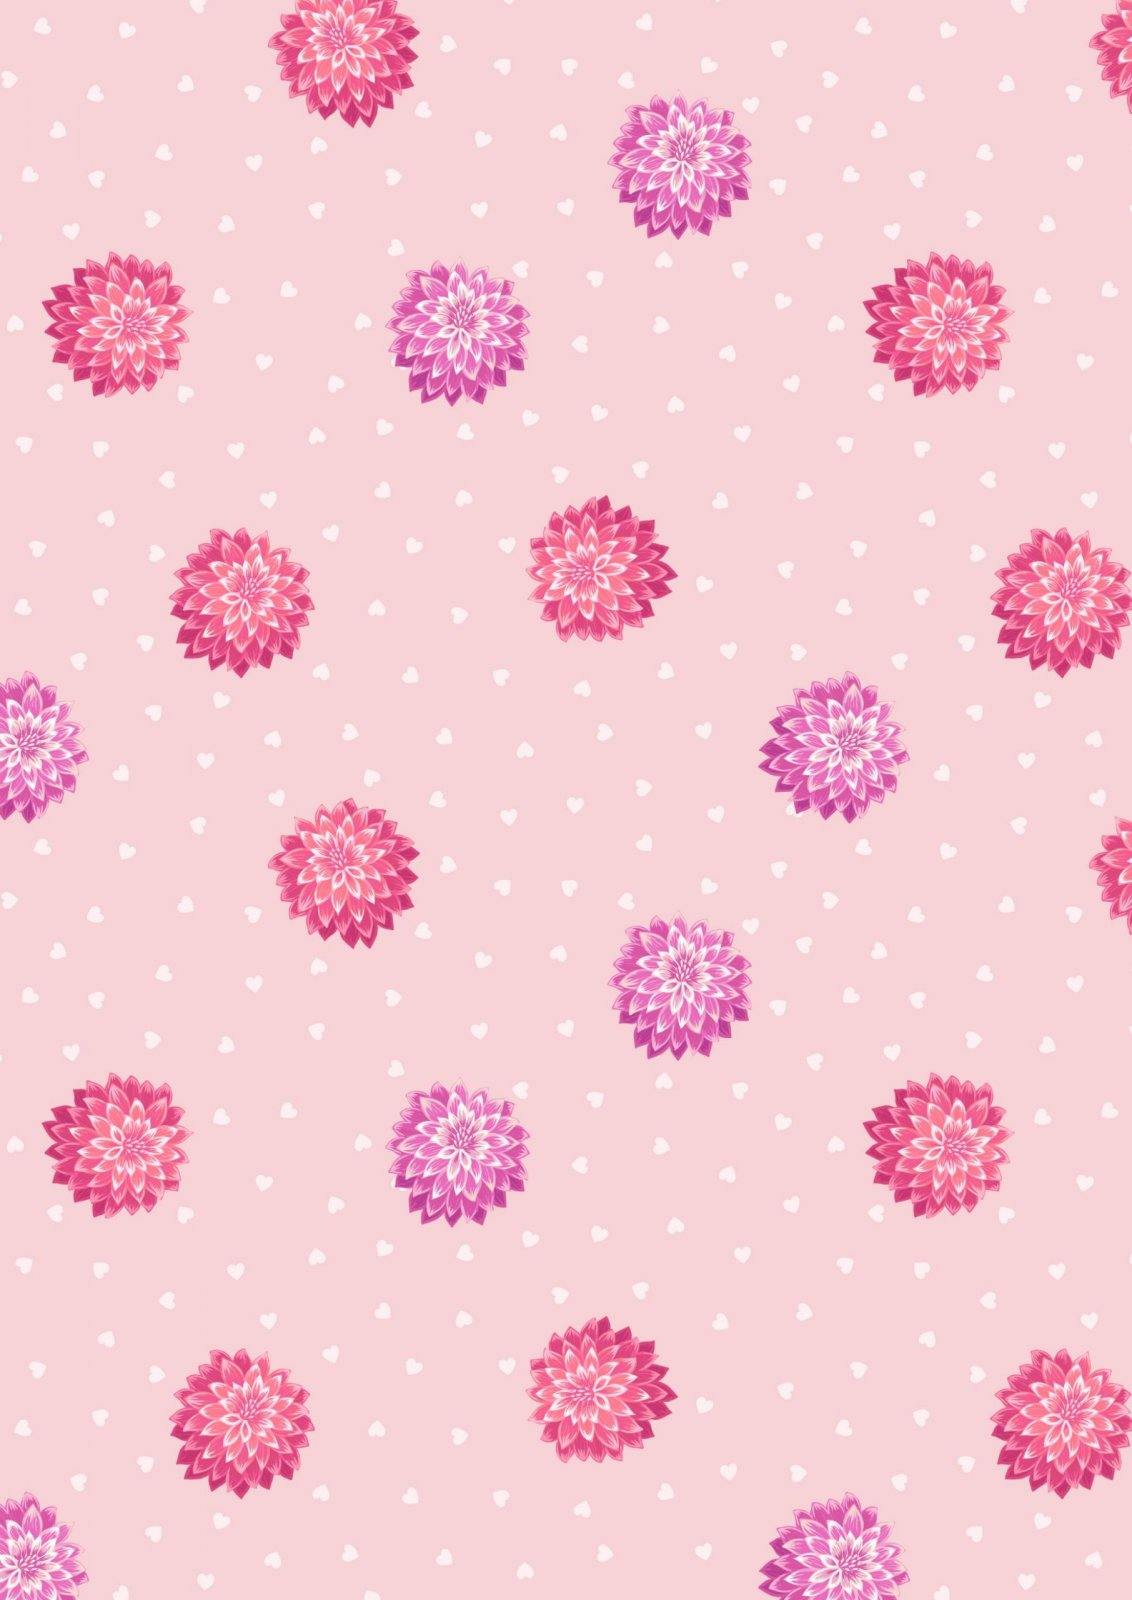 Love Blooms - A524.1 Dahlia & Hearts on Pale Pink